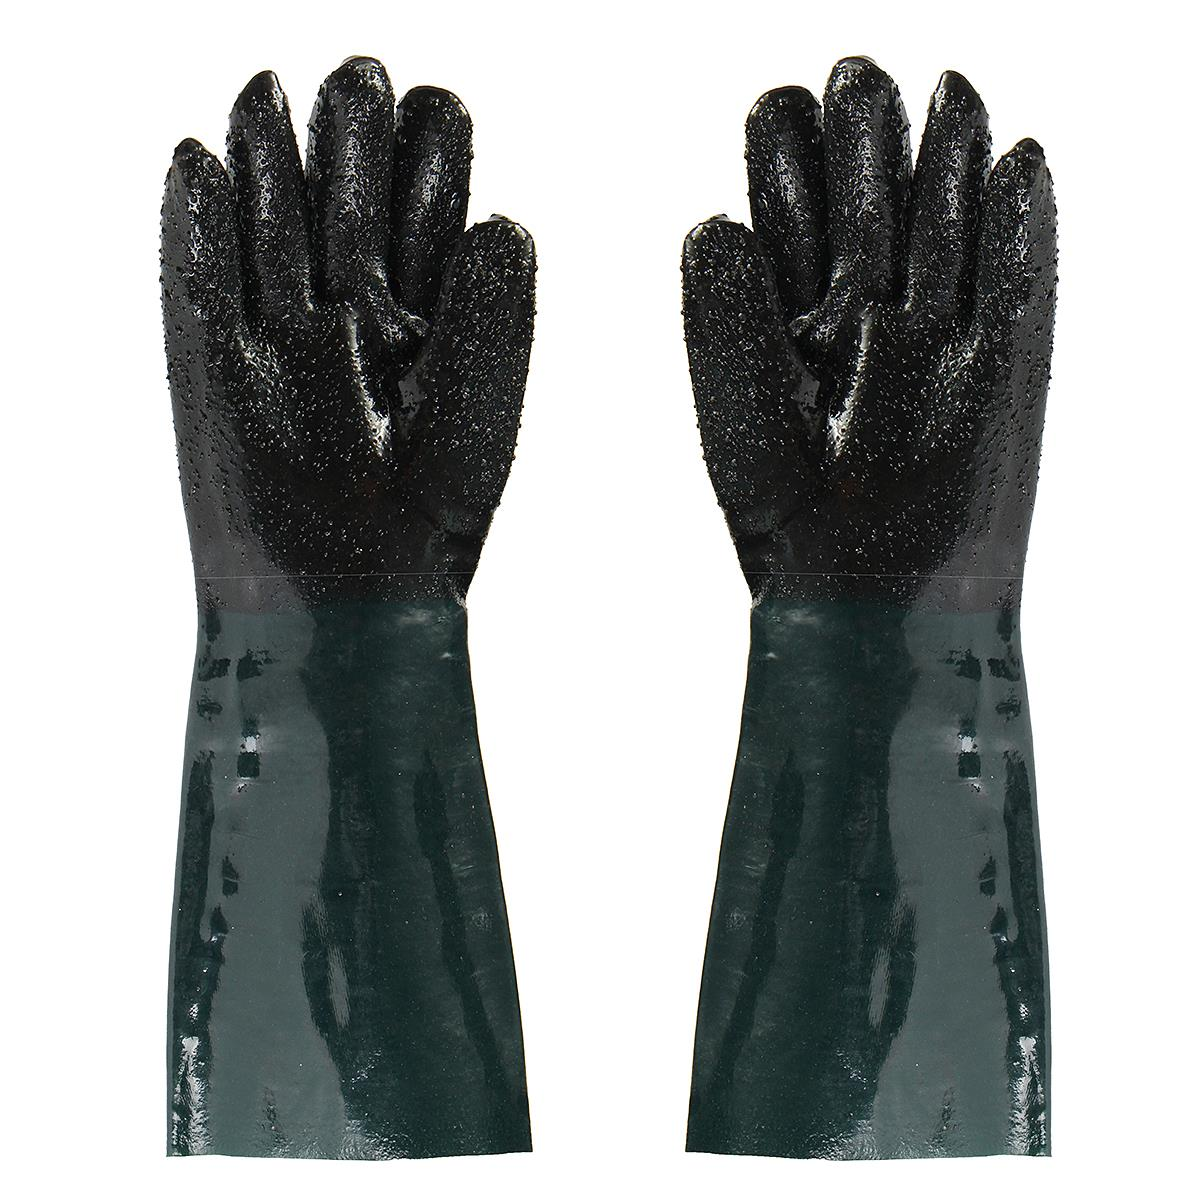 NEW 48CM Rubber Sandblaster Sand Blaster Sandblasting Gloves For Sandblast Cabinets Safety Glove pvc sandblaster gloves 60cm